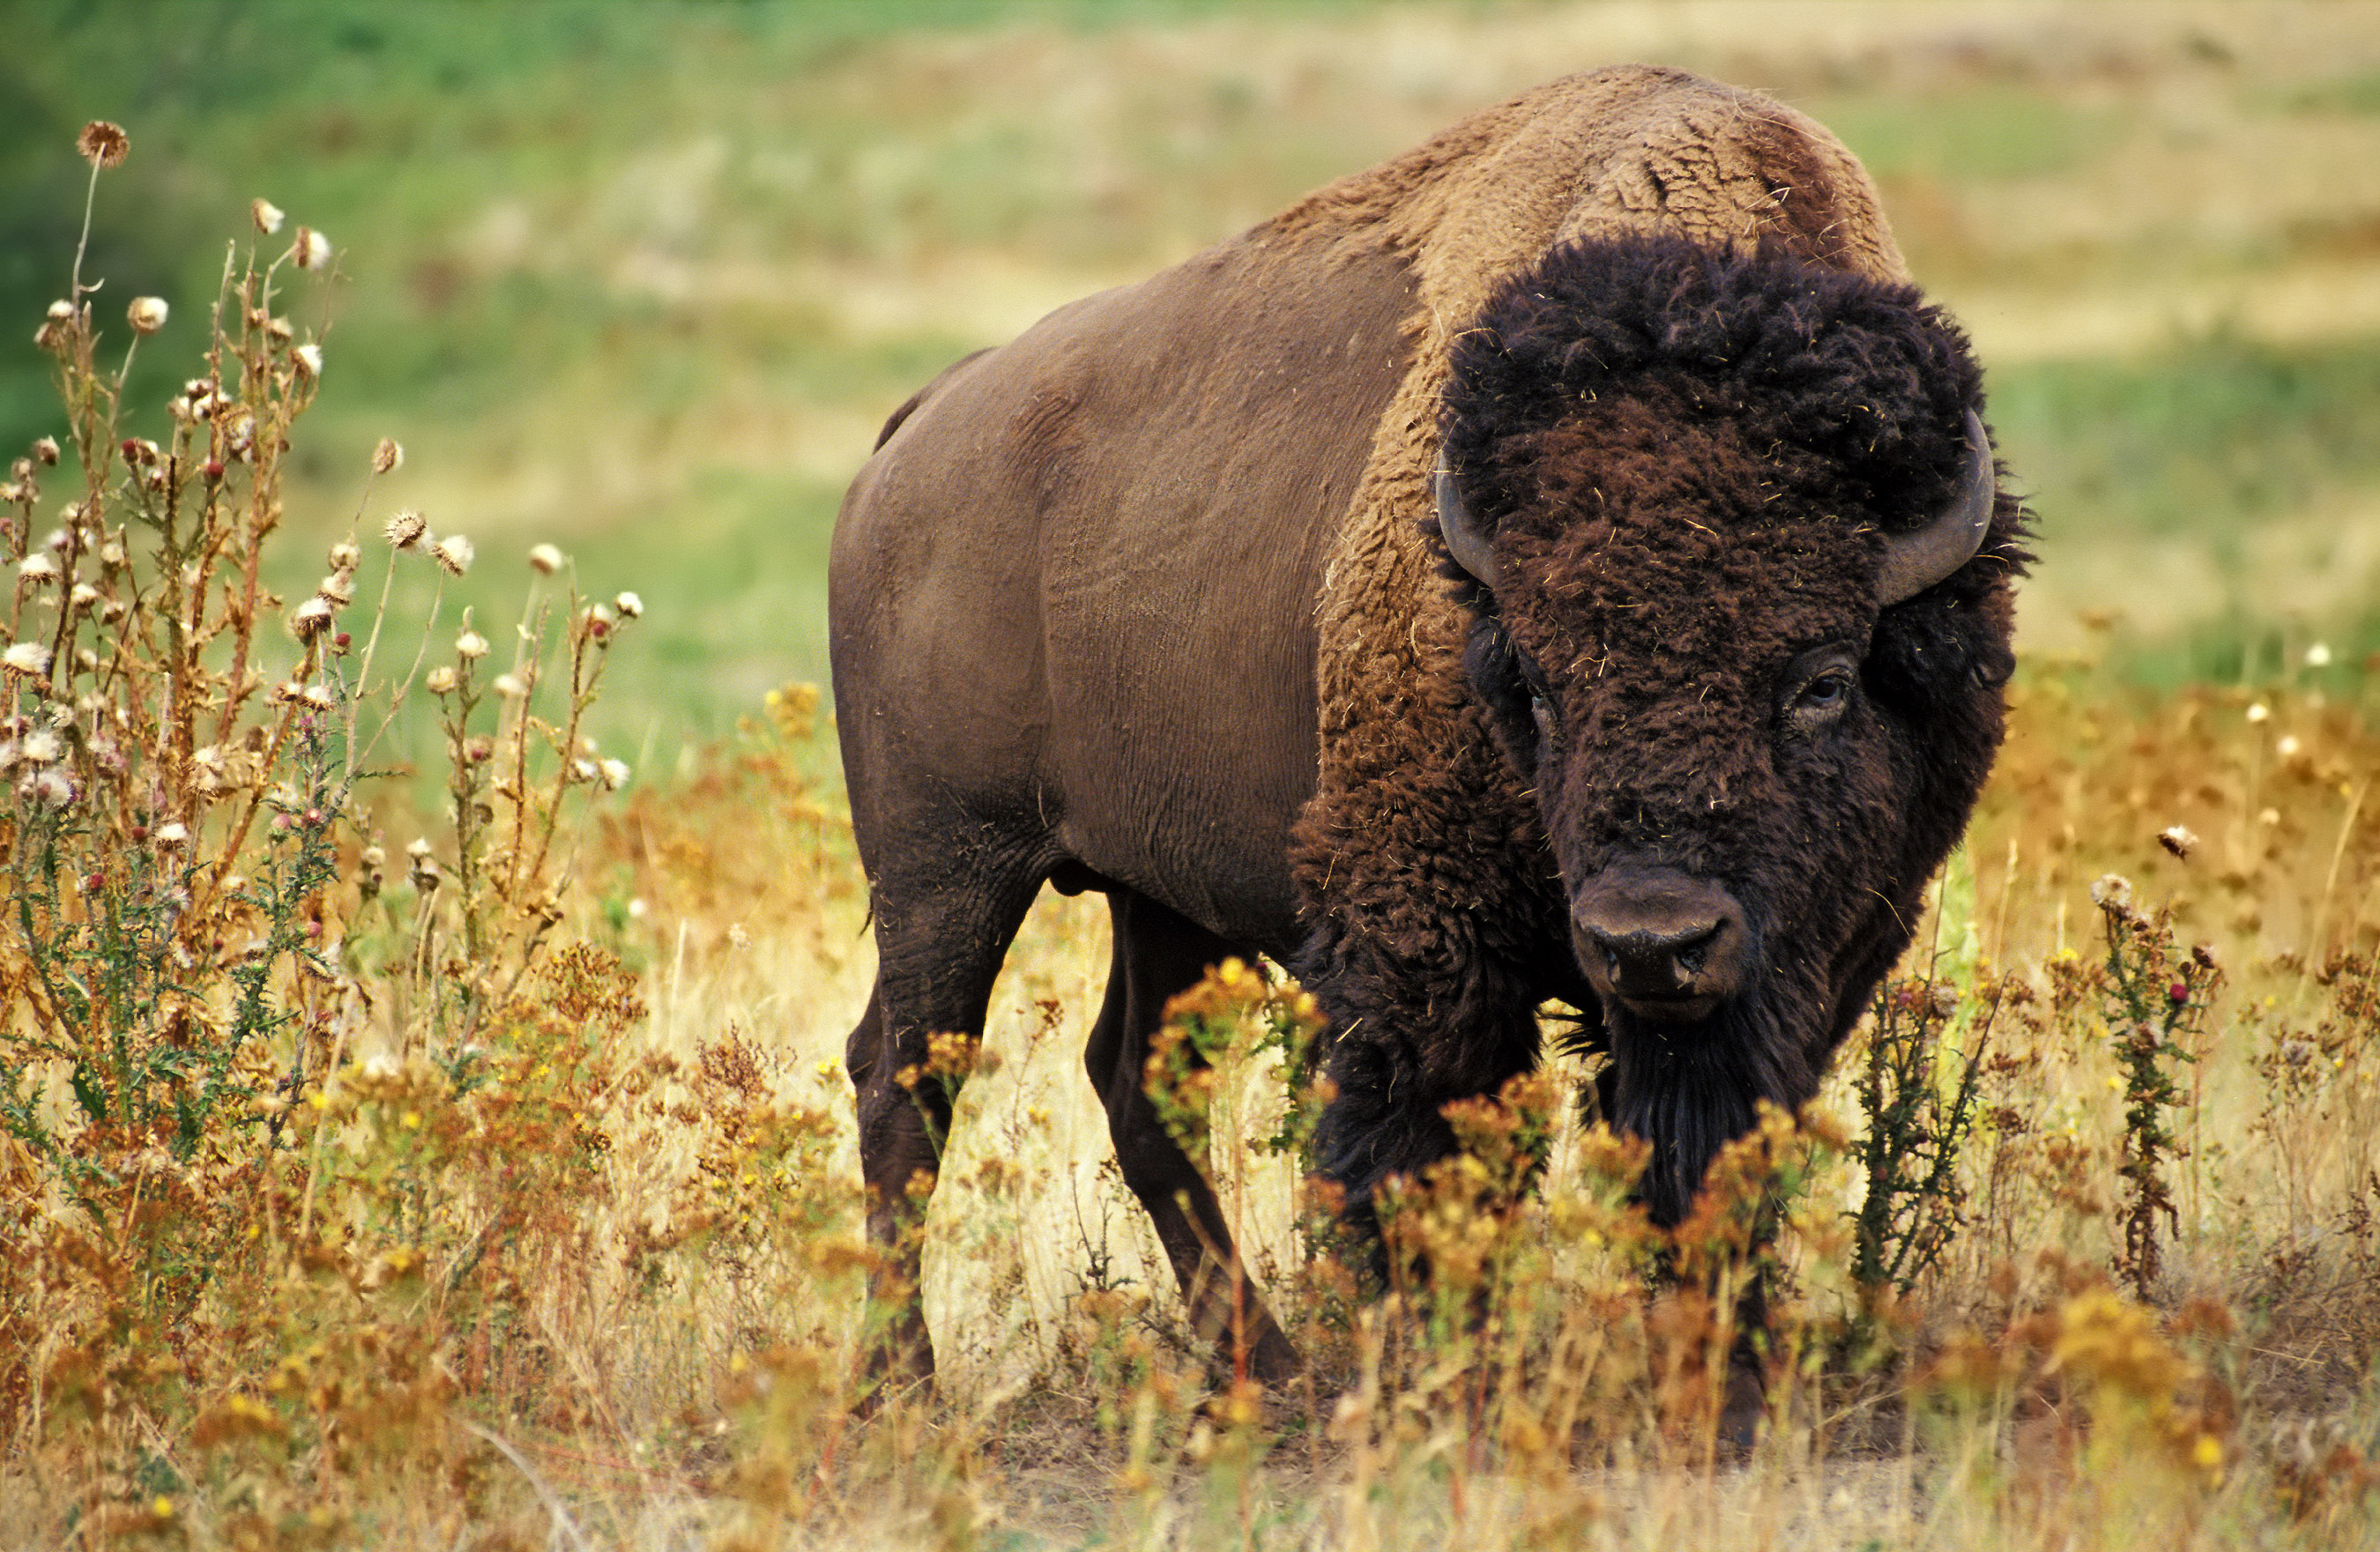 https://upload.wikimedia.org/wikipedia/commons/8/89/American_bison_k5680-1_edit.jpg